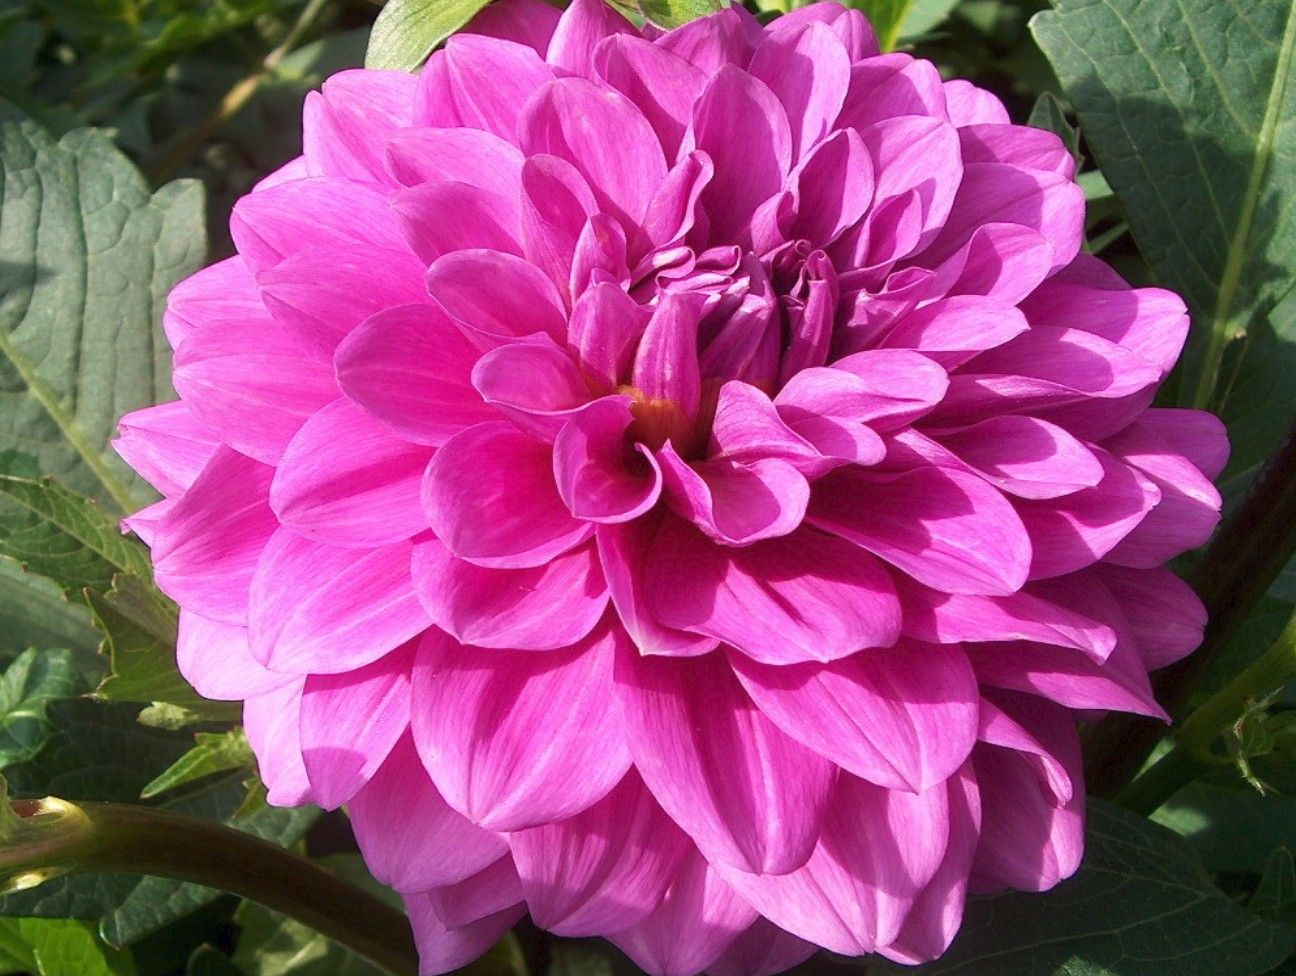 Dahlior sk p google flowers pretty pinterest dahlia dahlias come in many sizes and vigor of plants flowers vary in size type color and number mightylinksfo